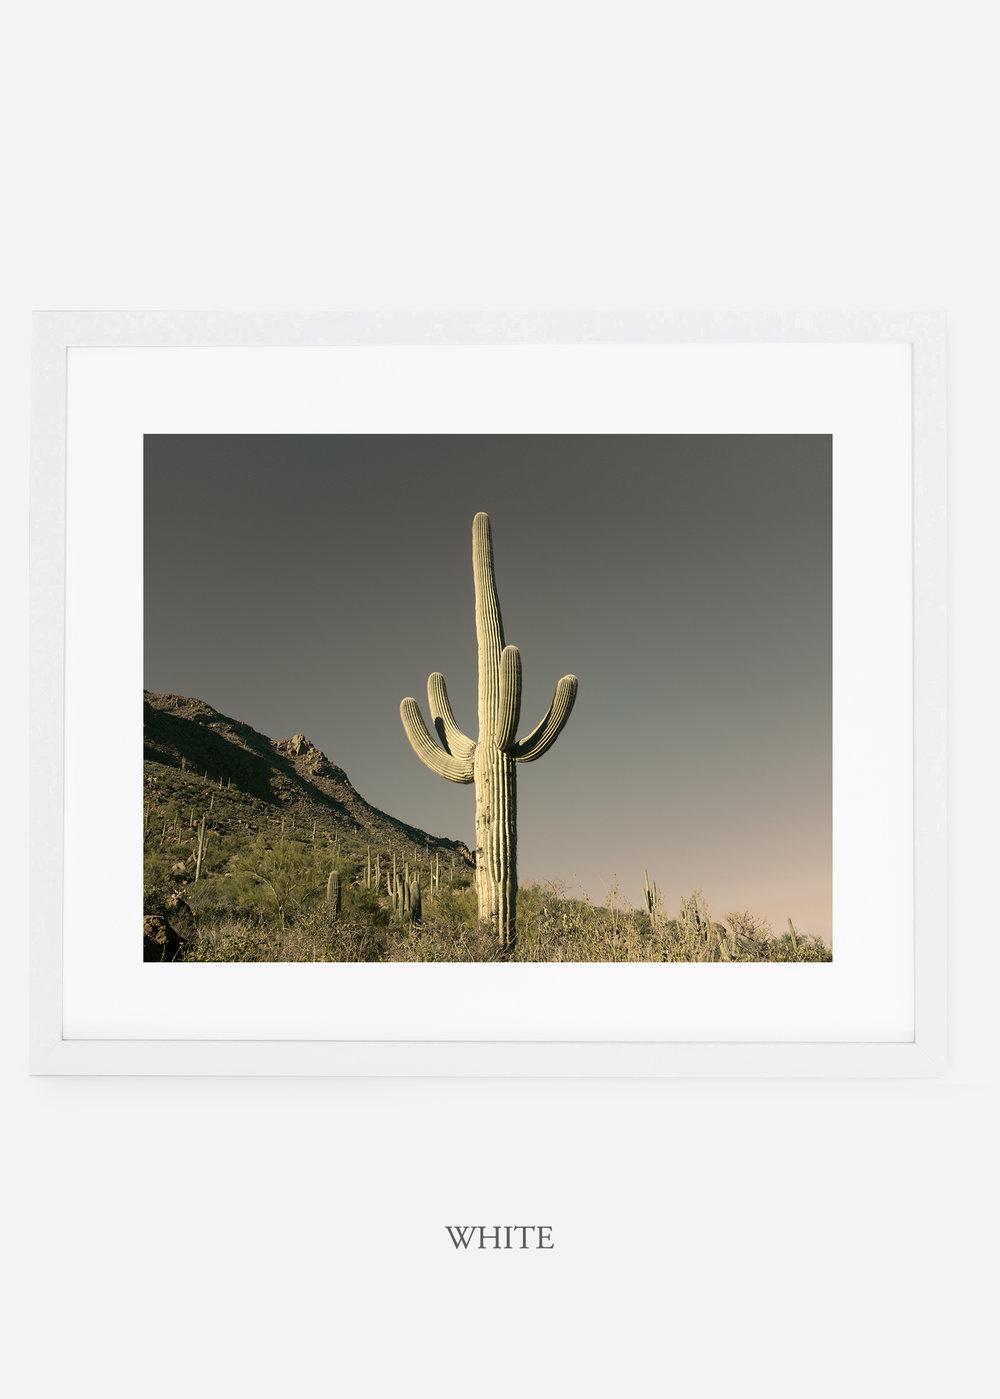 whiteframe-saguaroNo.19-wildercalifornia-art-wallart-cactusprint-homedecor-prints-arizona-botanical-artwork-interiordesign.jpg